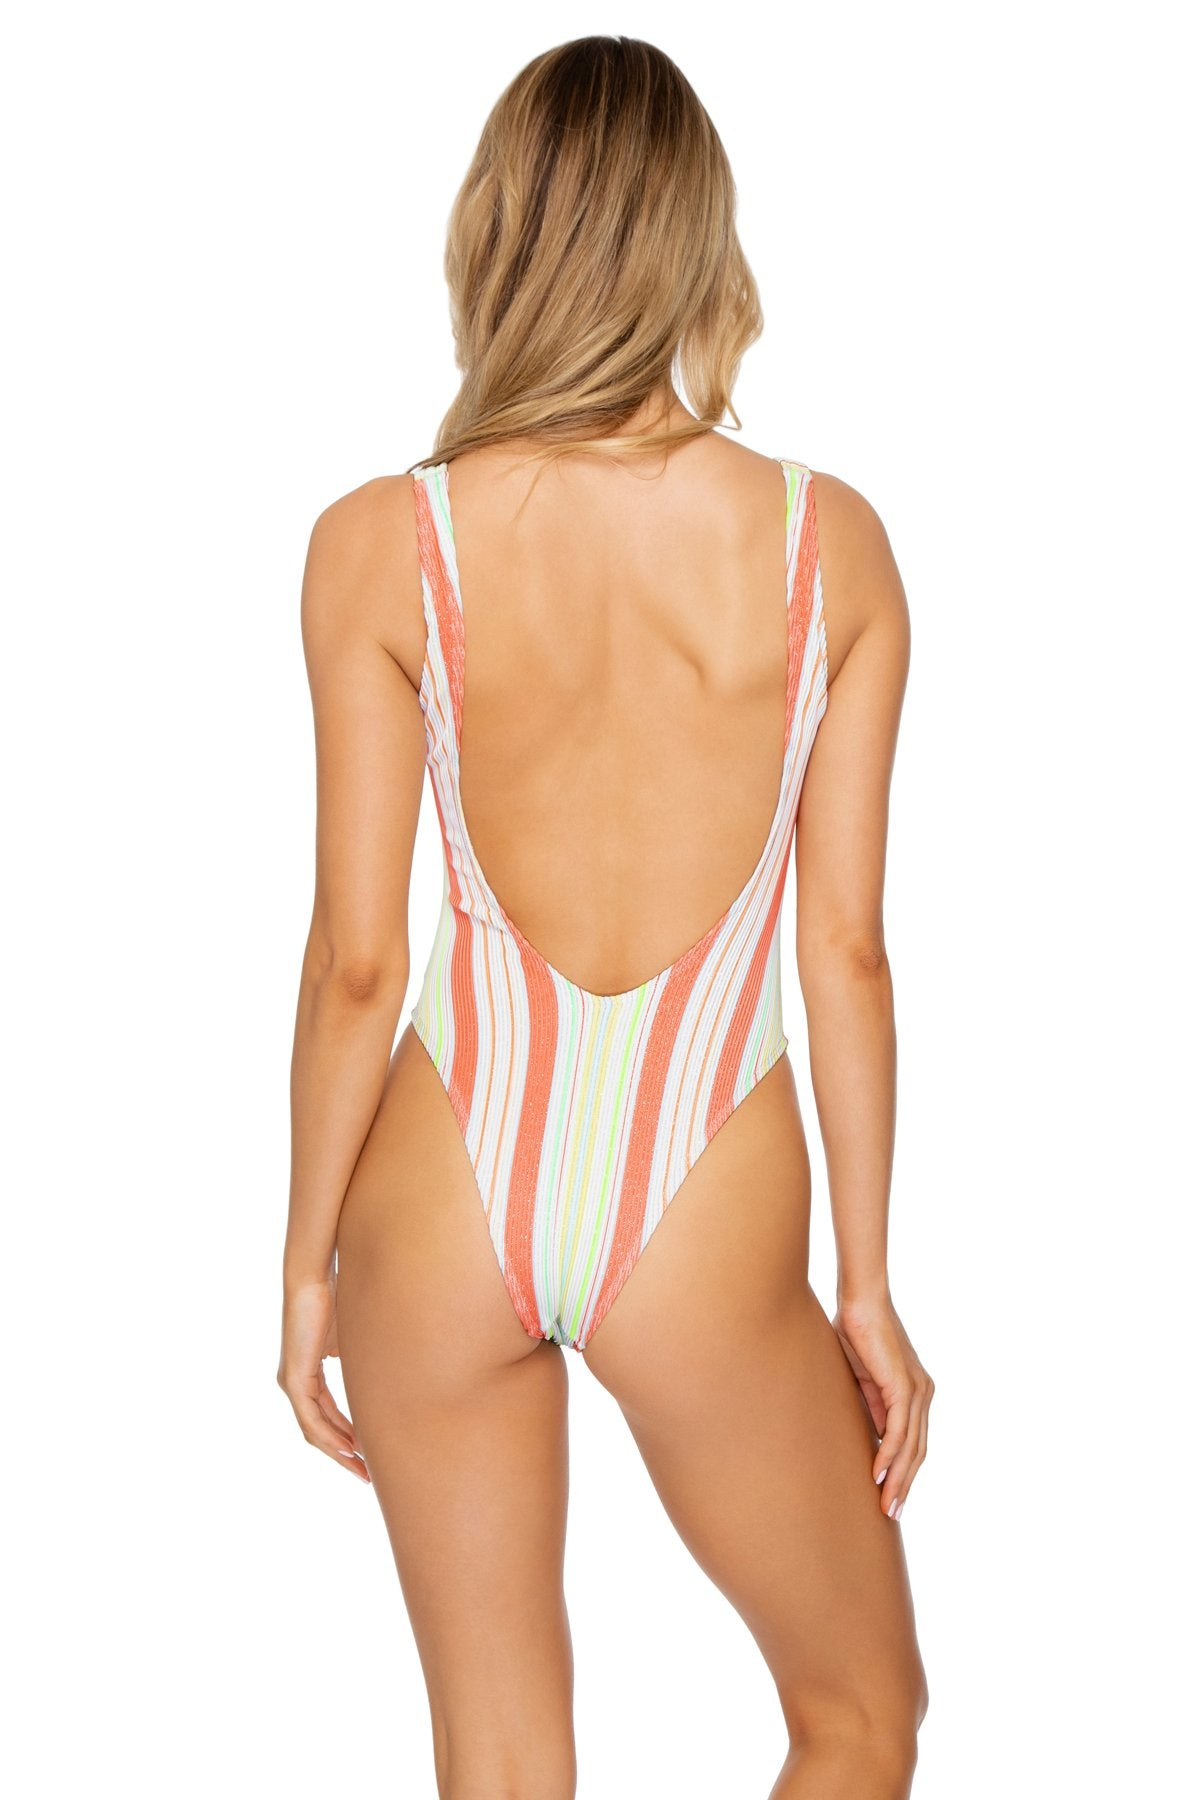 PLAY TIME - Tank One Piece • Multi White